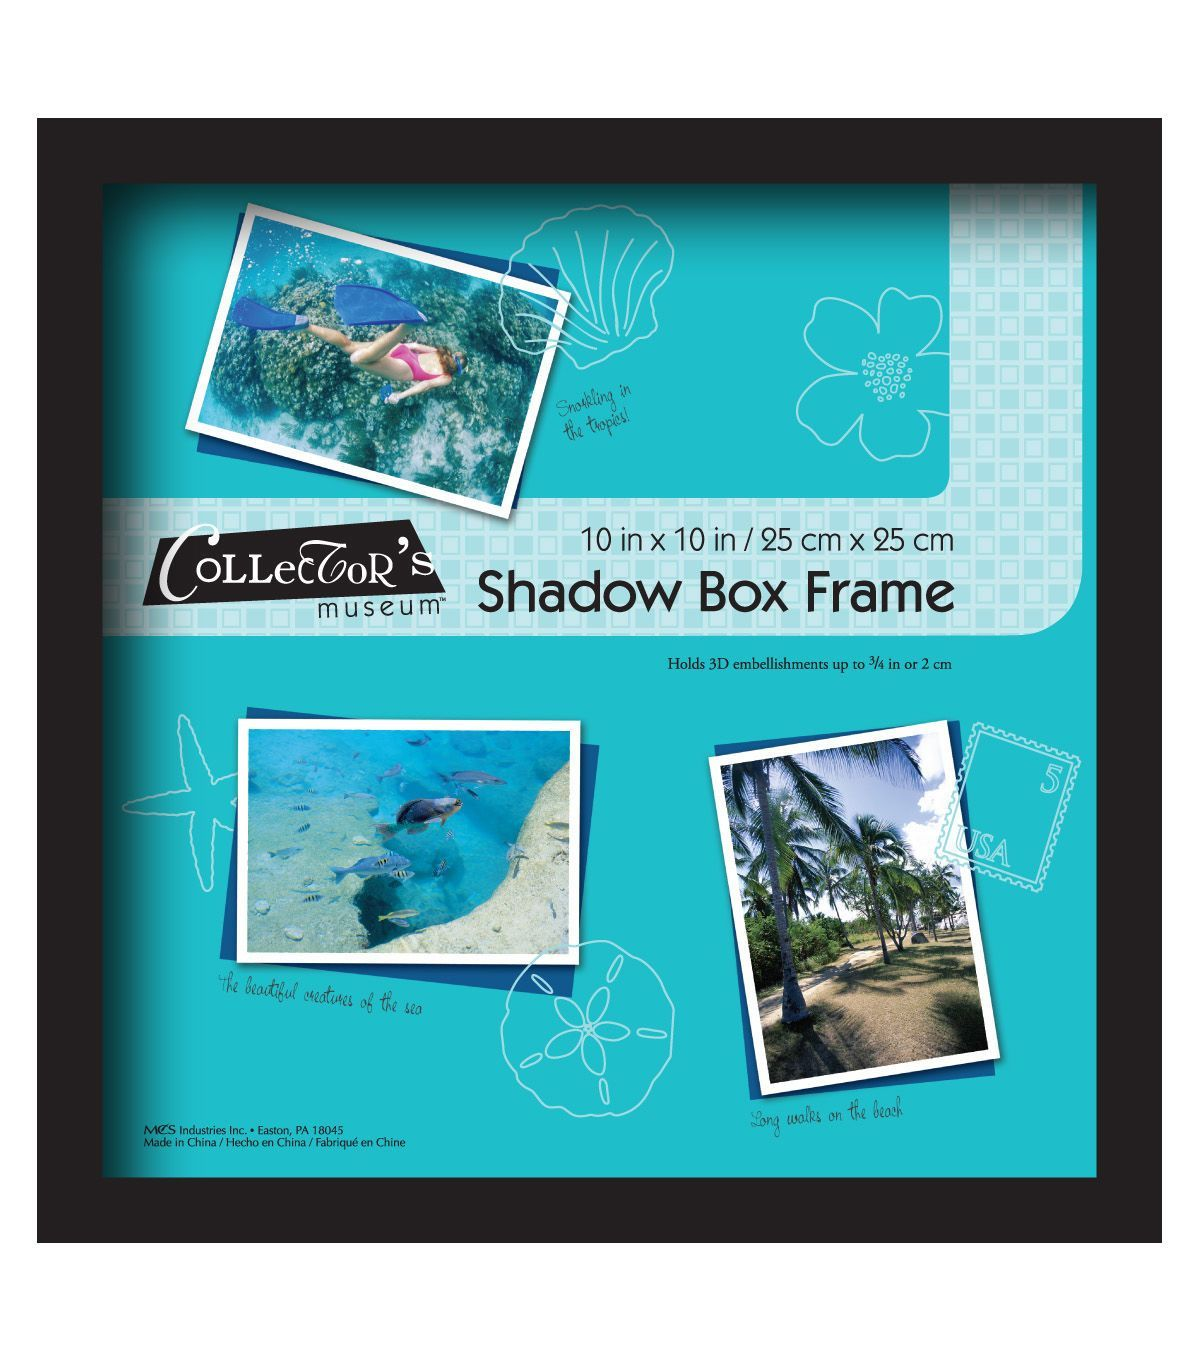 Mcs Industries Collector S Museum Shadow Box Frame 10 X10 Black Products Shadow Box Frames Box Frames Frames On Wall